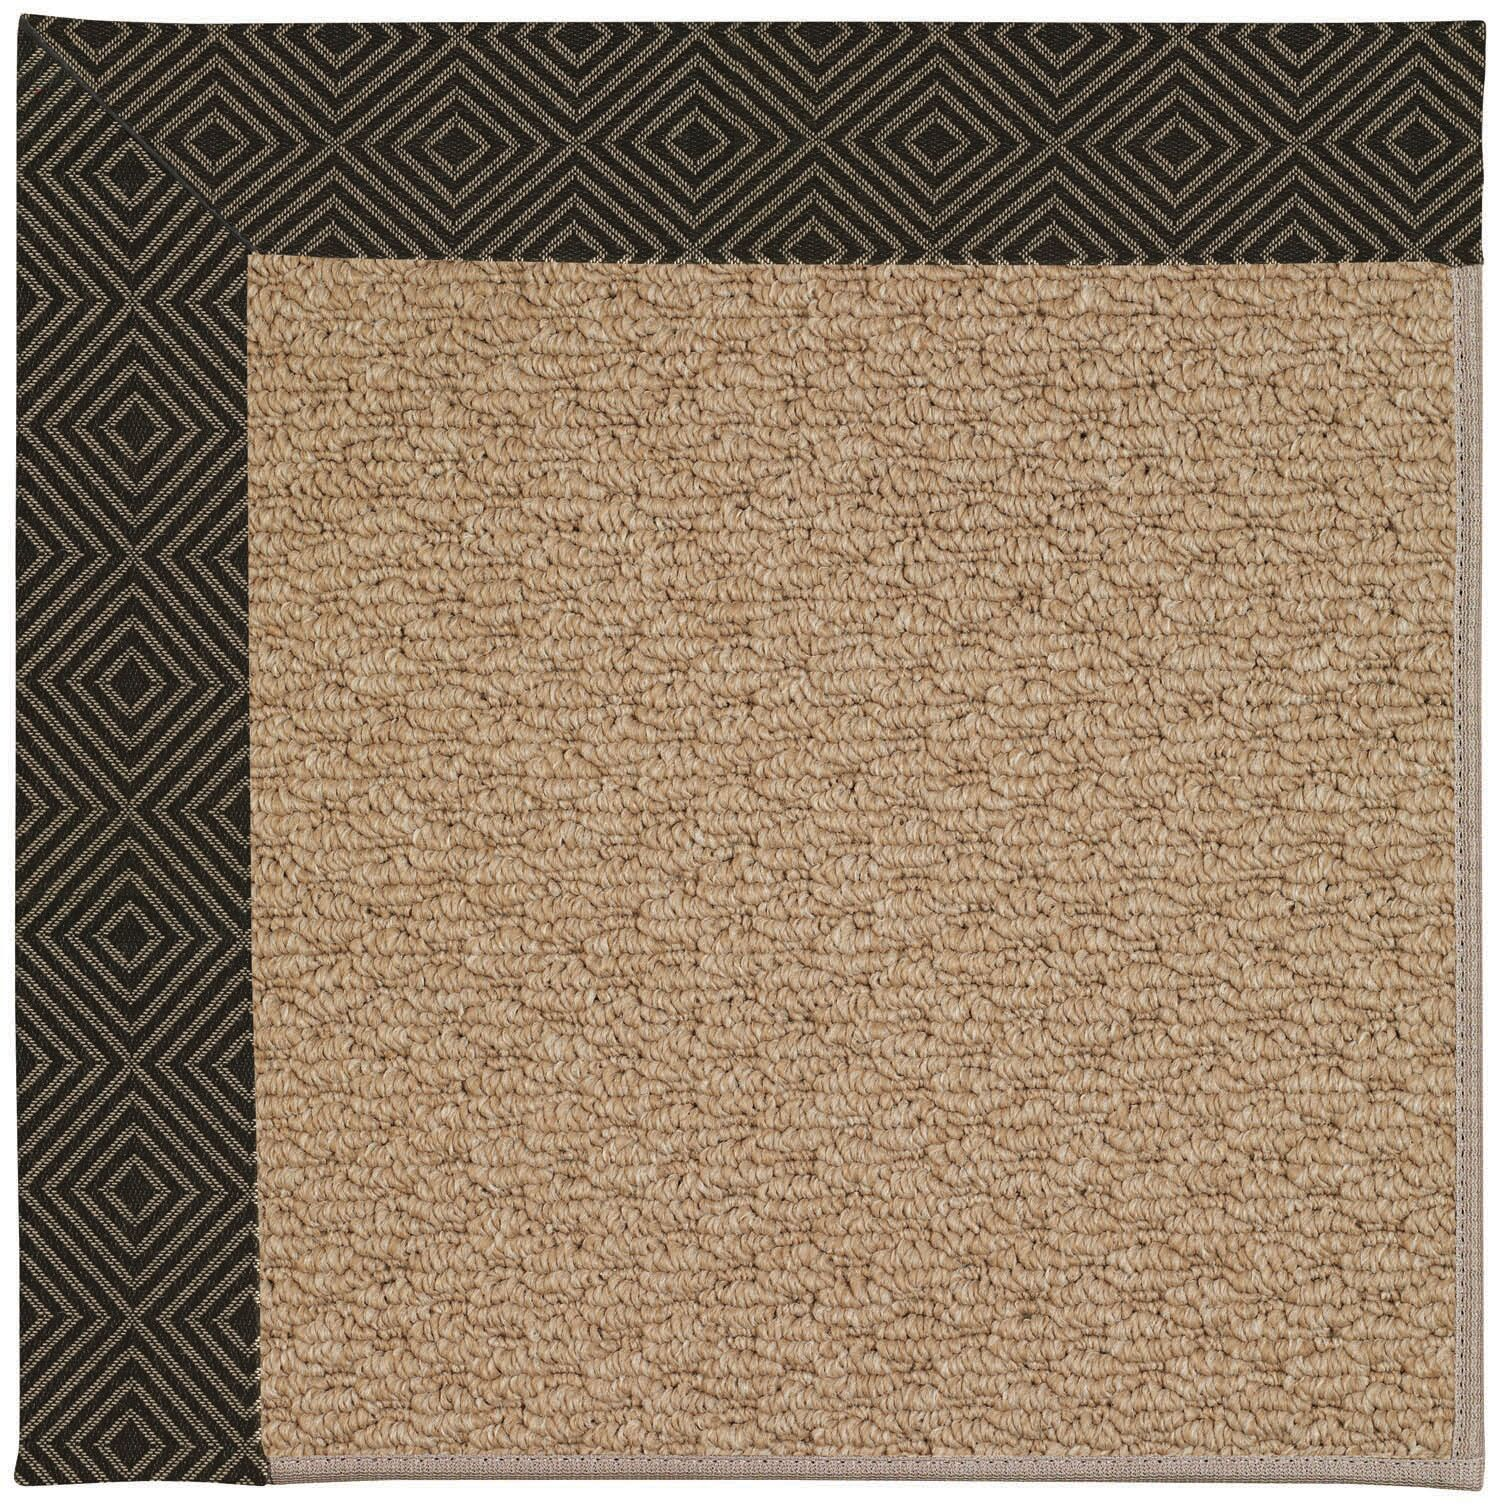 Lisle Machine Tufted Magma/Brown Indoor/Outdoor Area Rug Rug Size: Square 6'